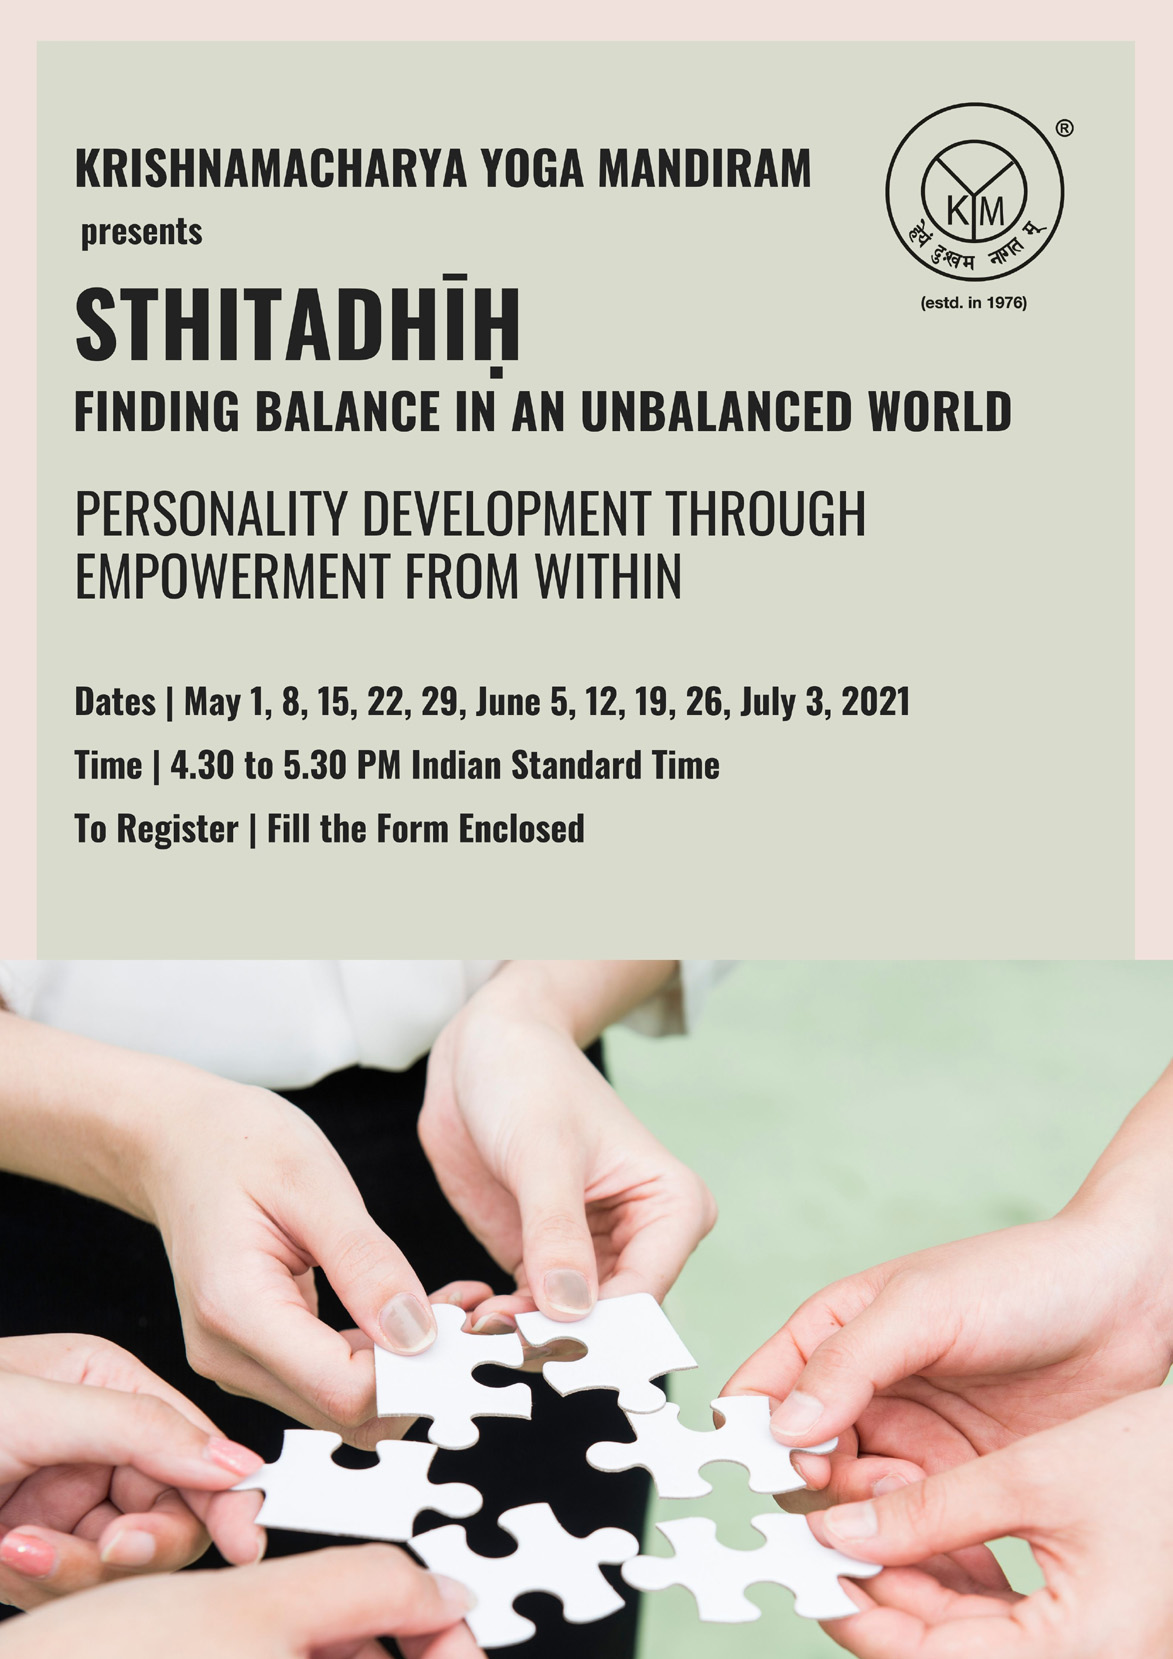 Personality development through empowerment from within